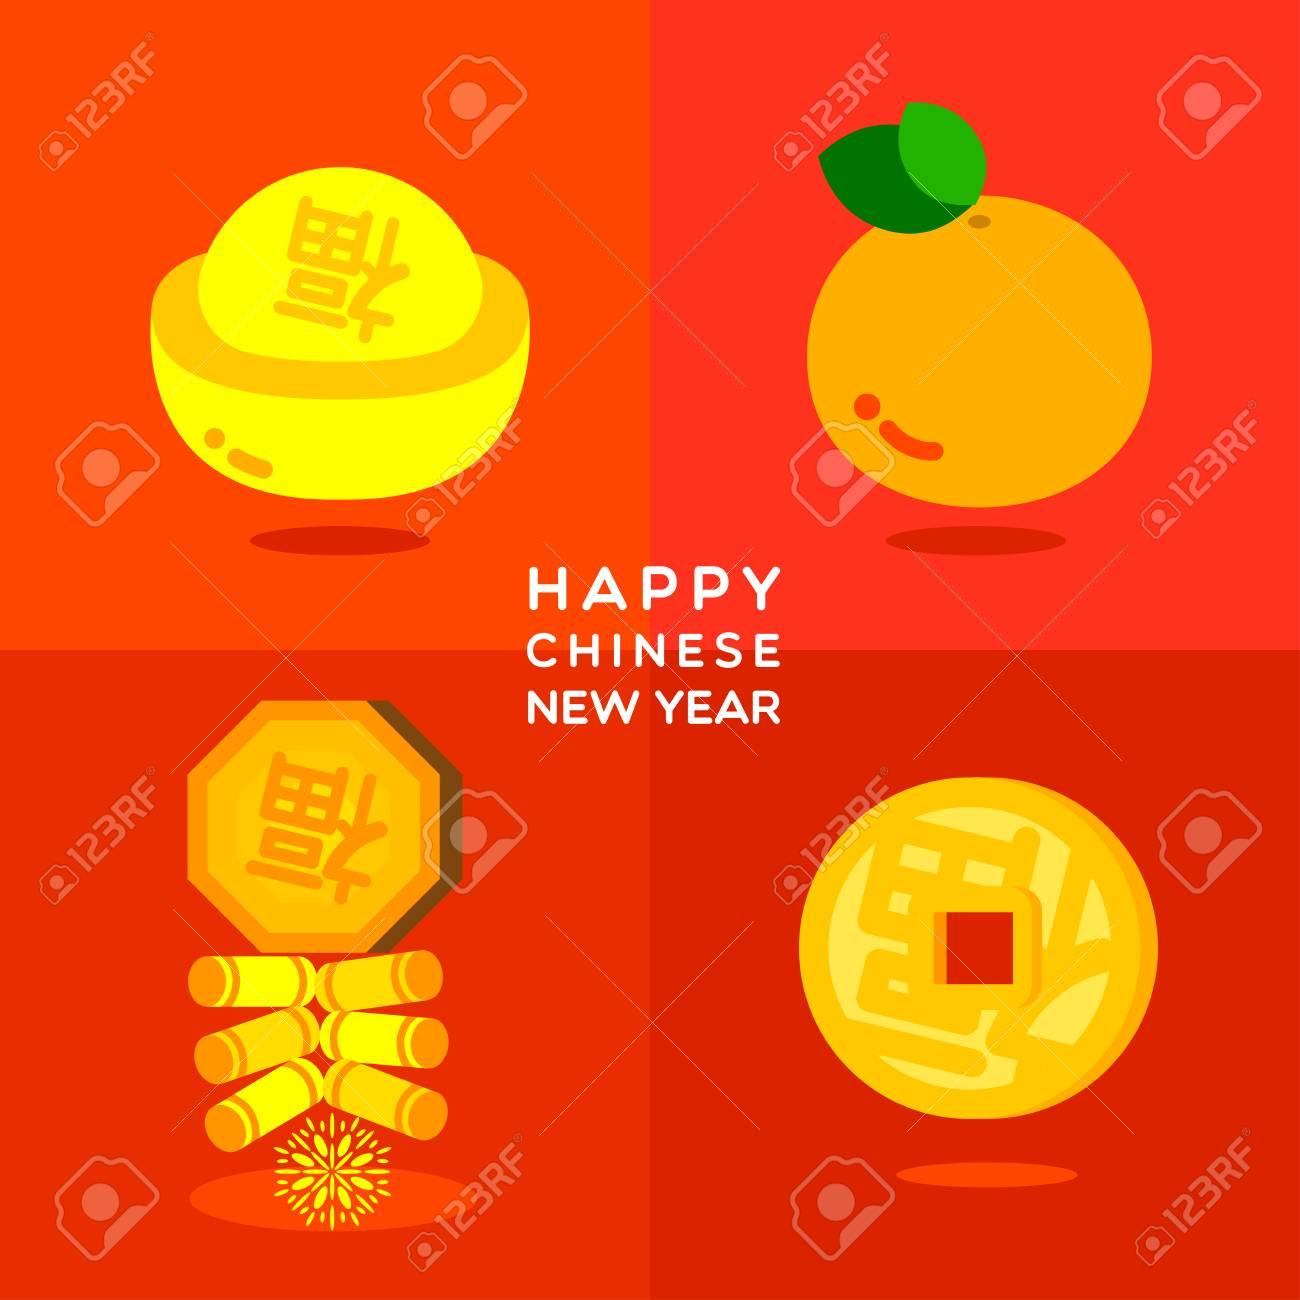 4 icons of chinese new year symbol blessing people for the festival 4 icons of chinese new year symbol blessing people for the festival stock vector buycottarizona Gallery